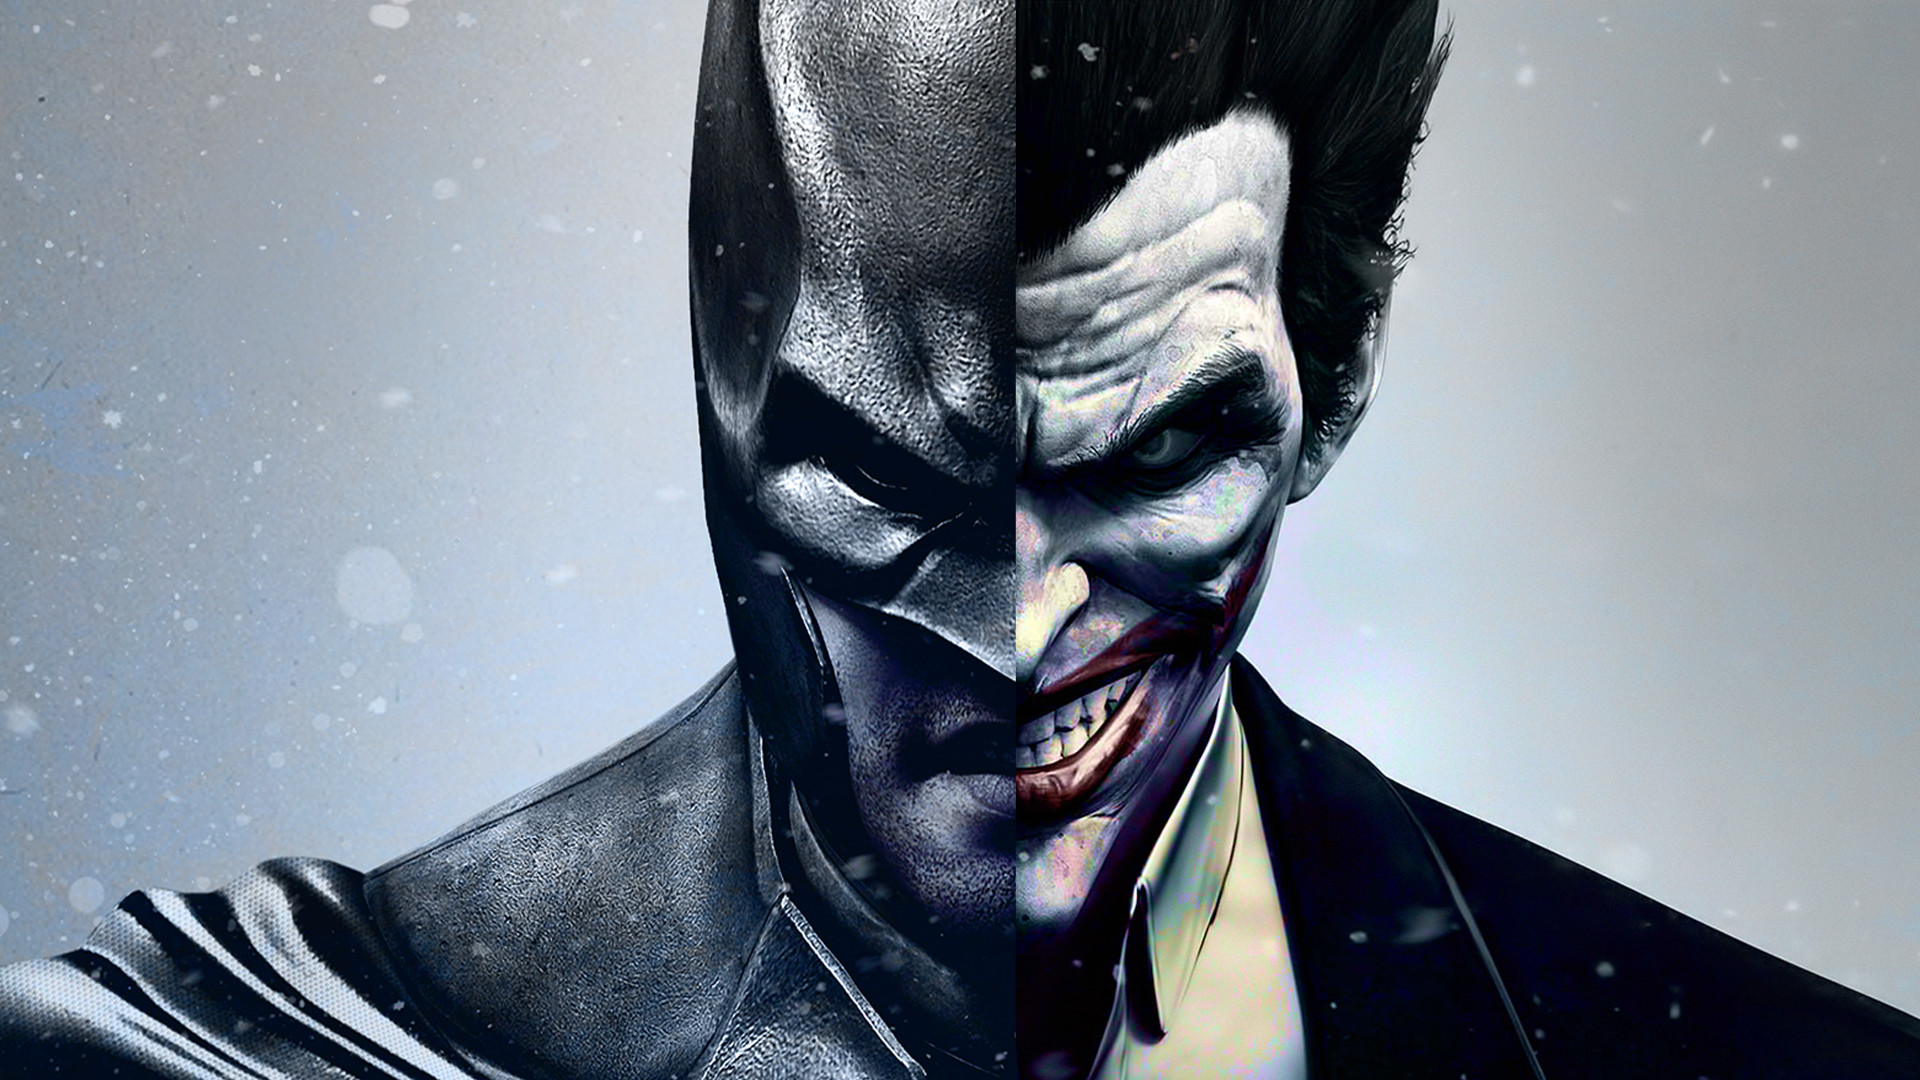 Batman Vs Joker Wallpaper 73 Images